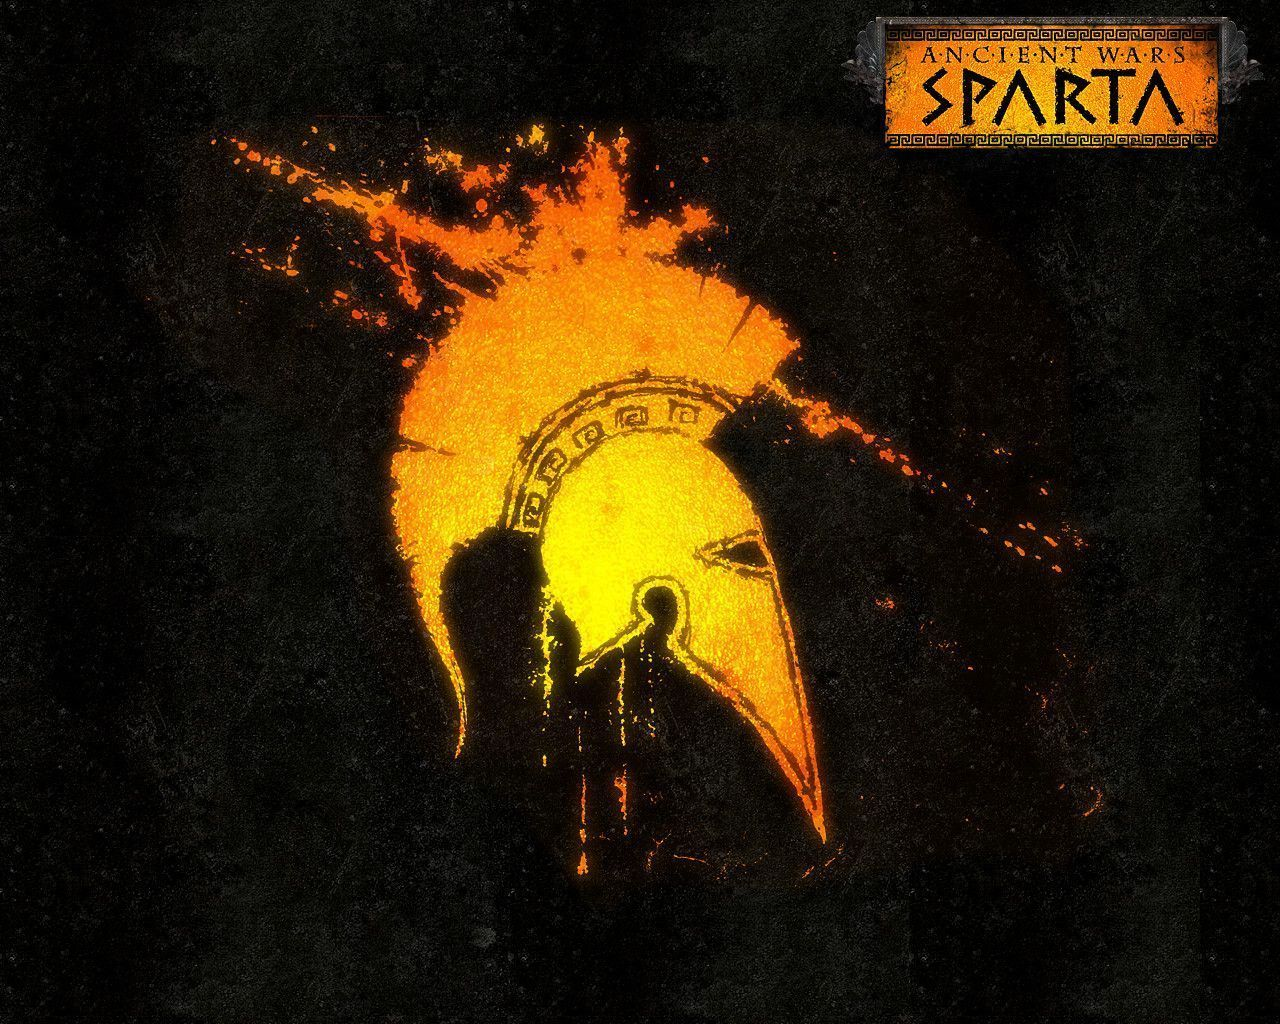 1280x1024 This Is Sparta Wallpapers